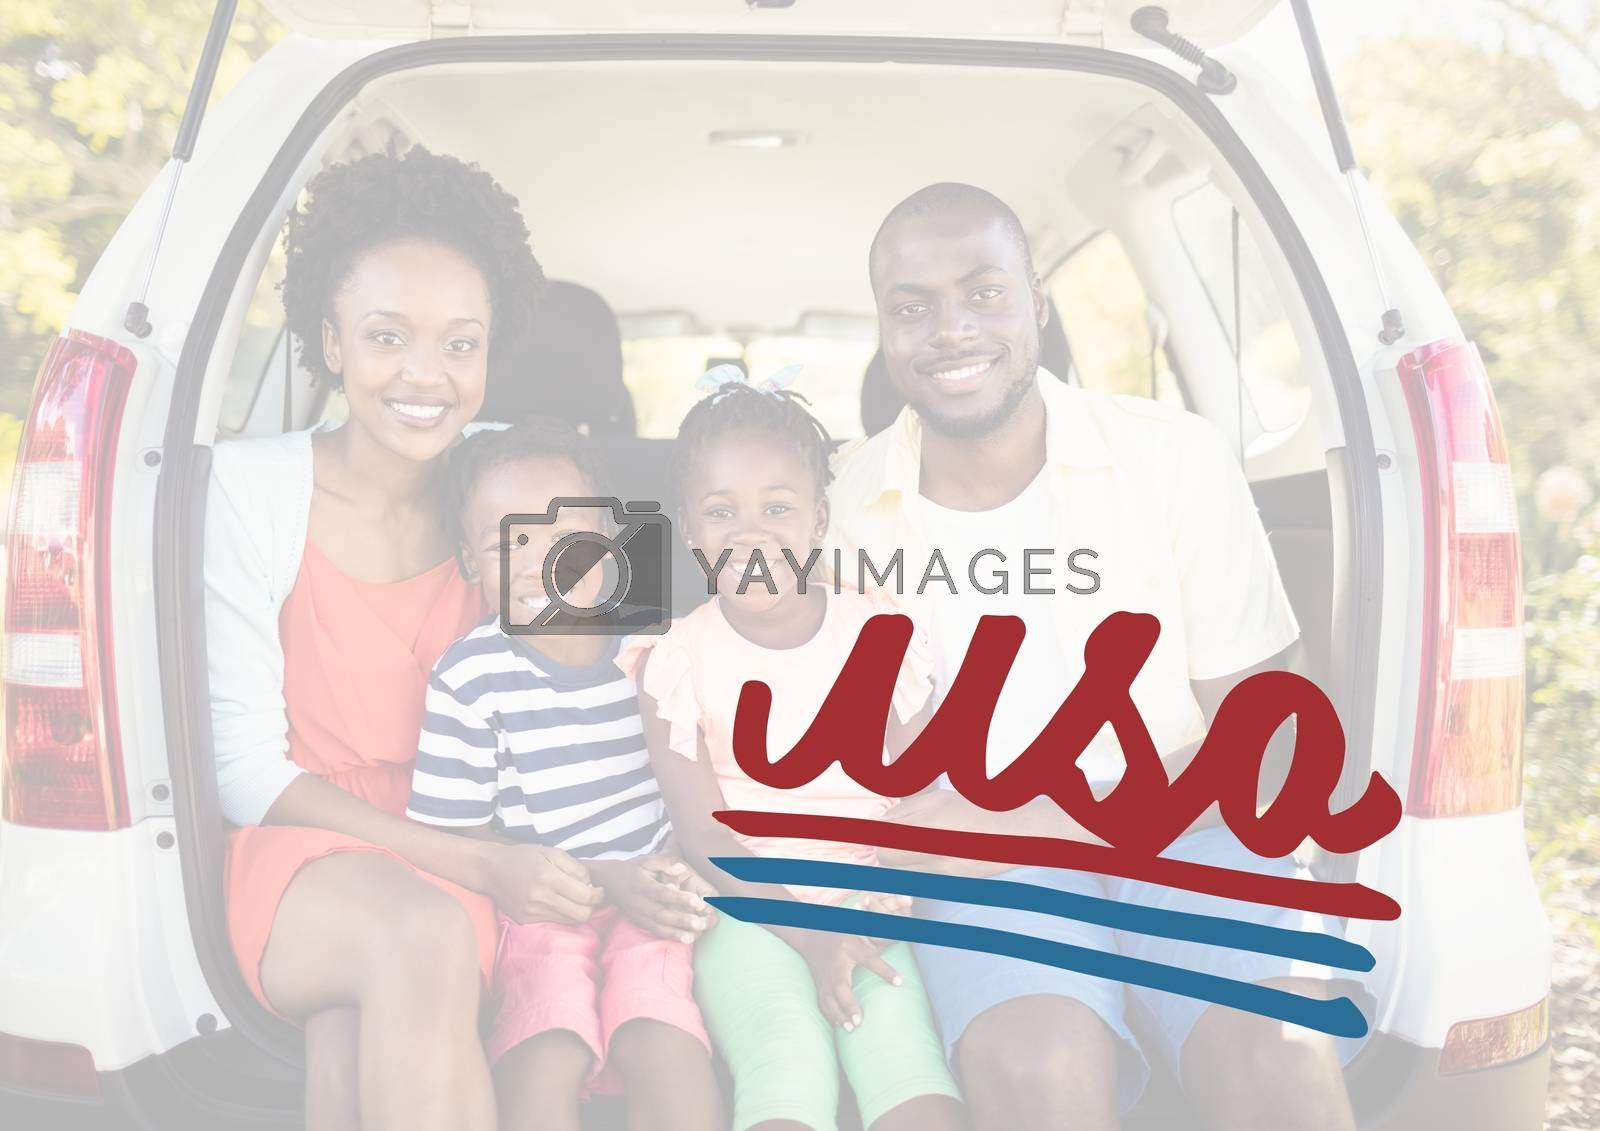 Digital composite of Smiling family in the car boot for the 4th of July